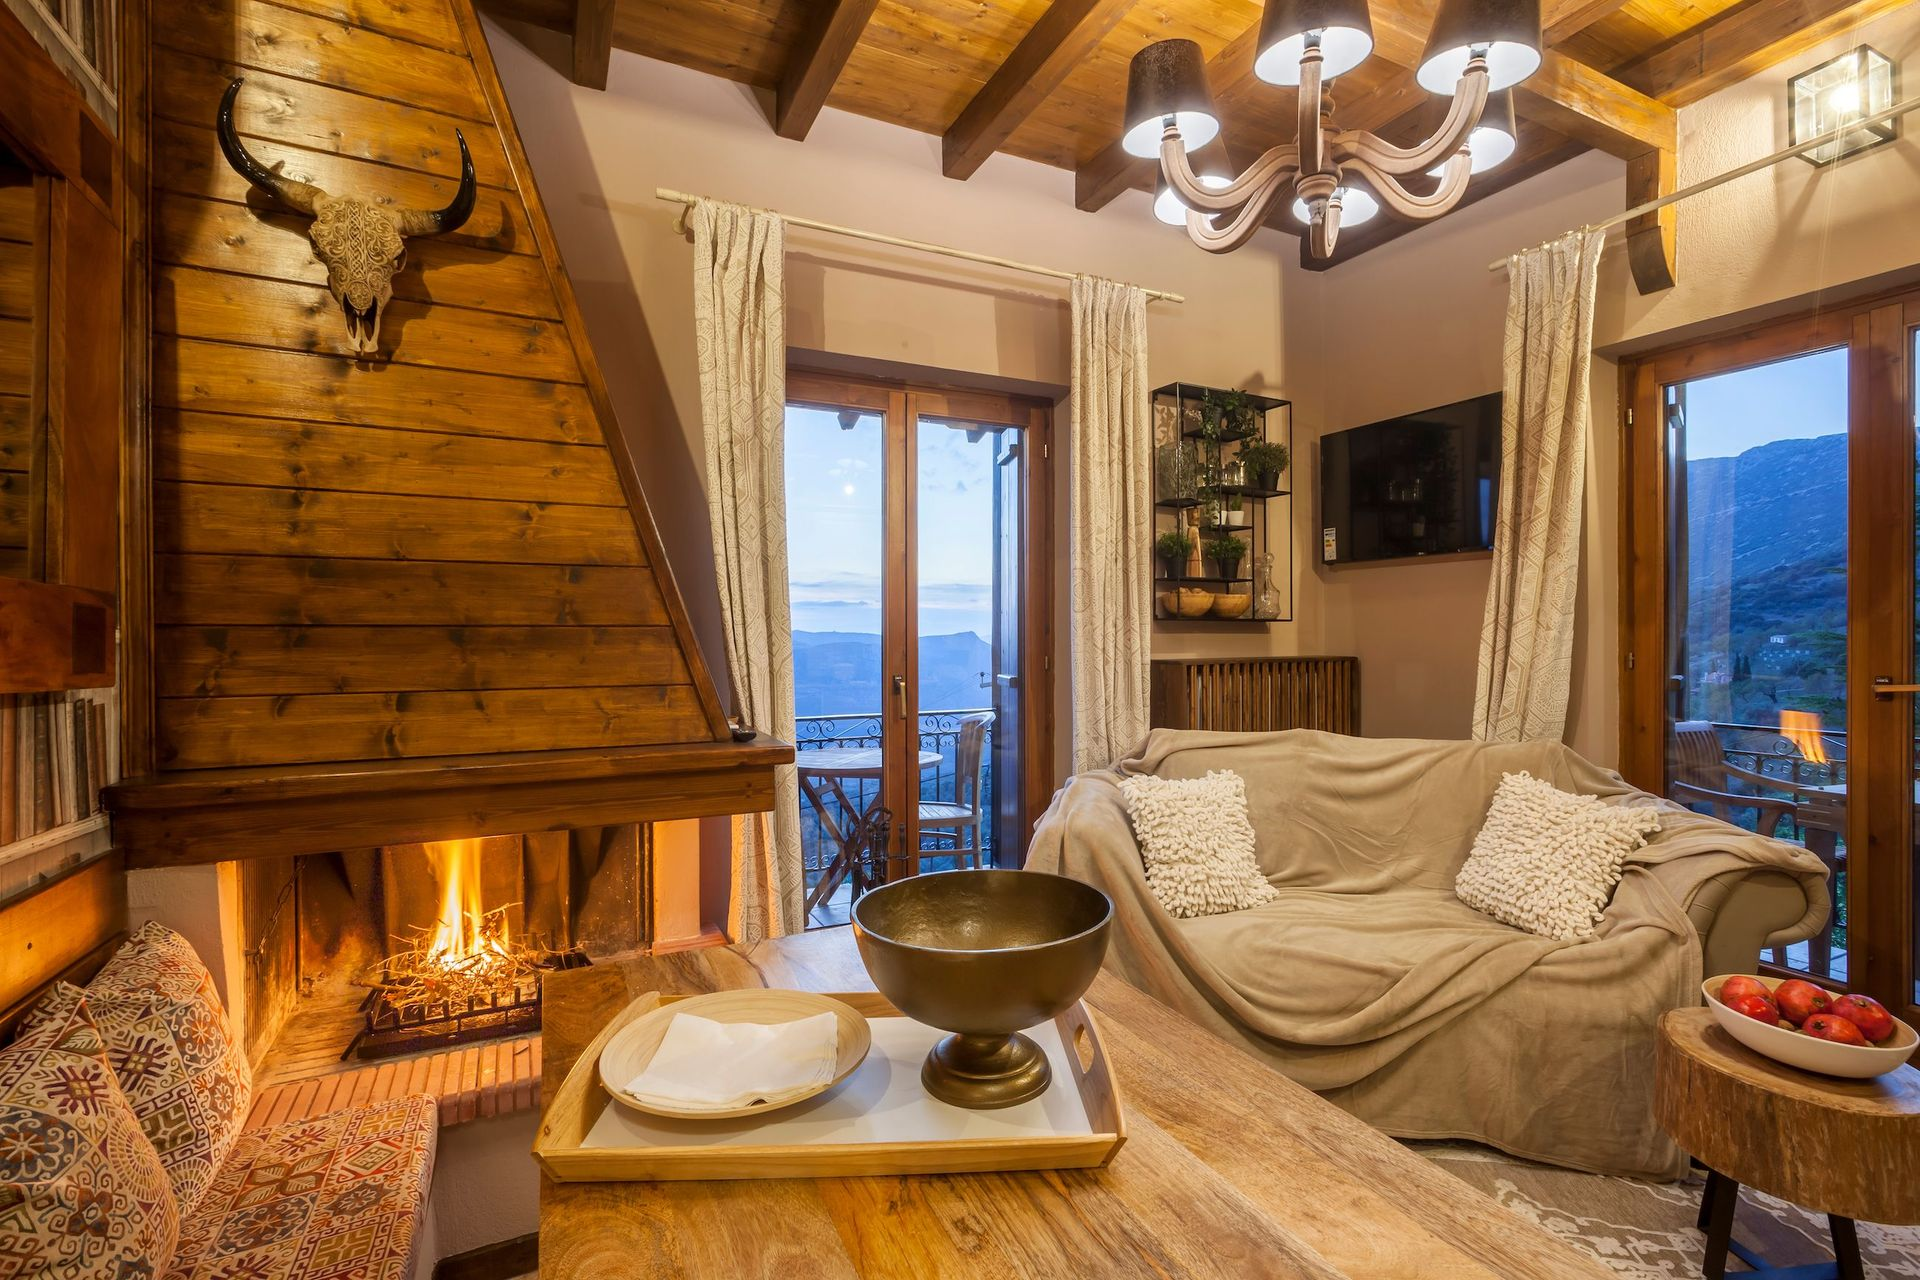 Rock Dandy Mountain House Arachova - Αράχωβα ✦ -27%